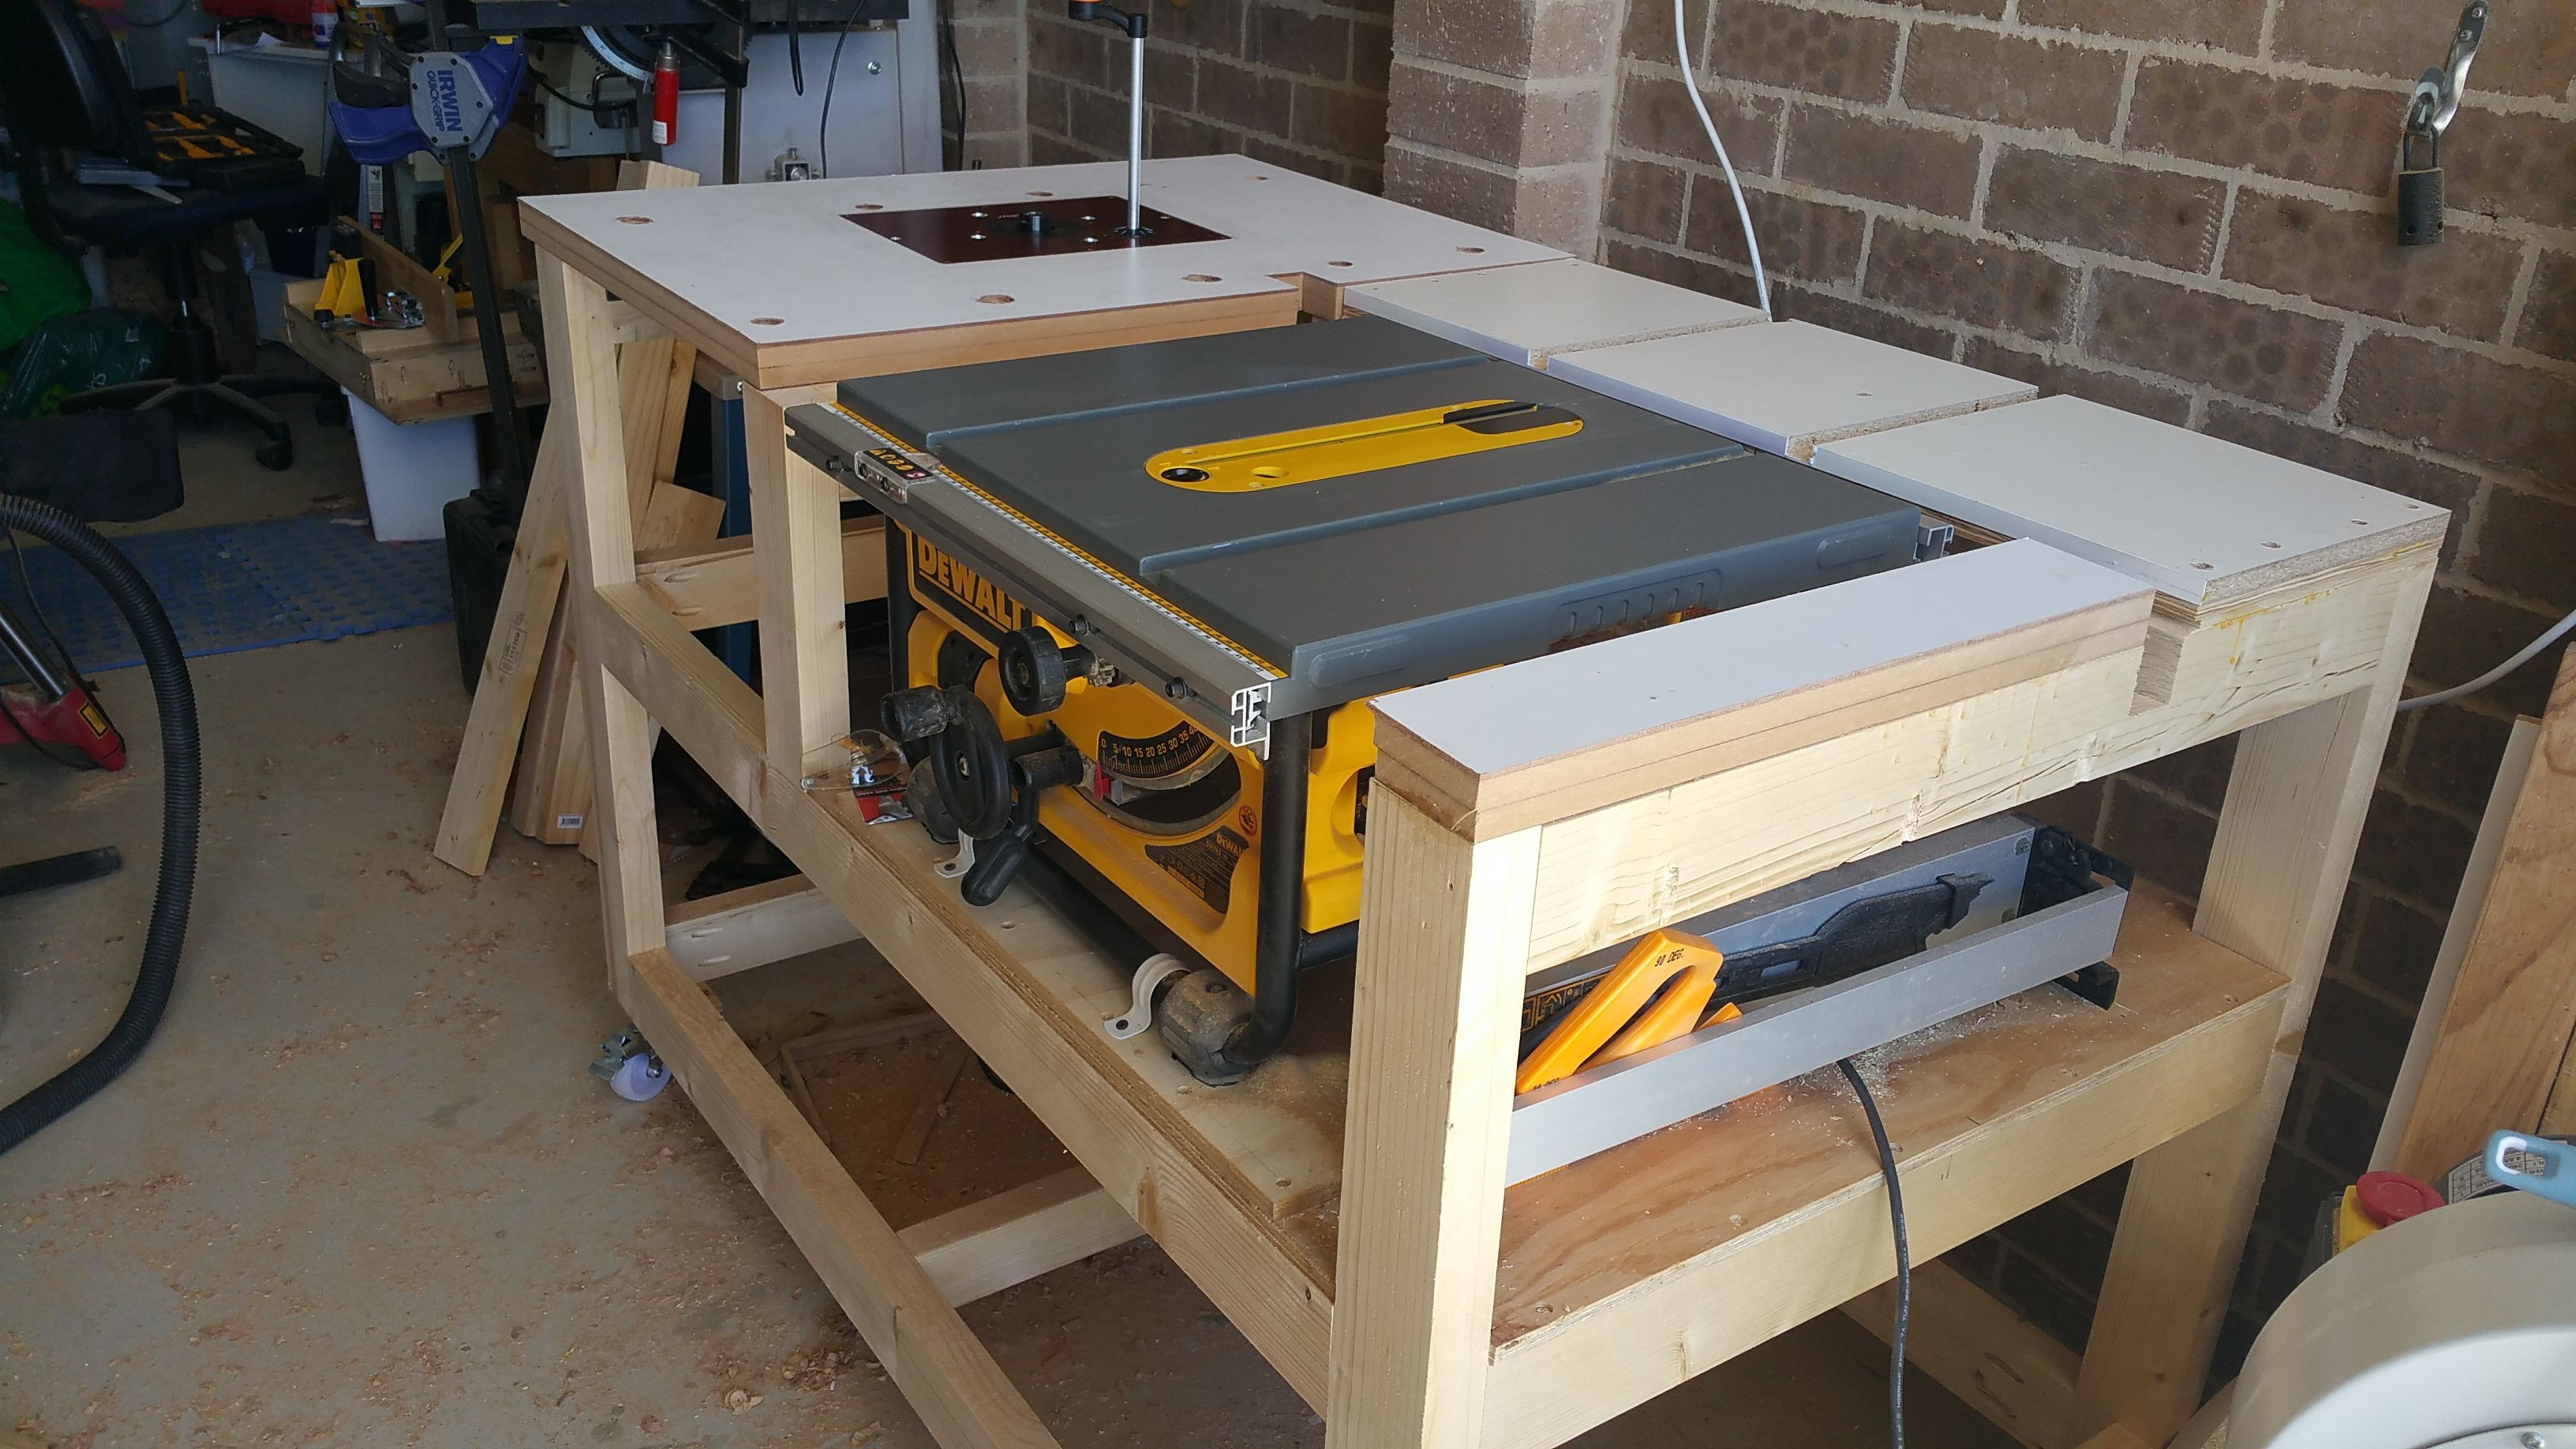 Workbench for DW745 with router table and outfeed. I made